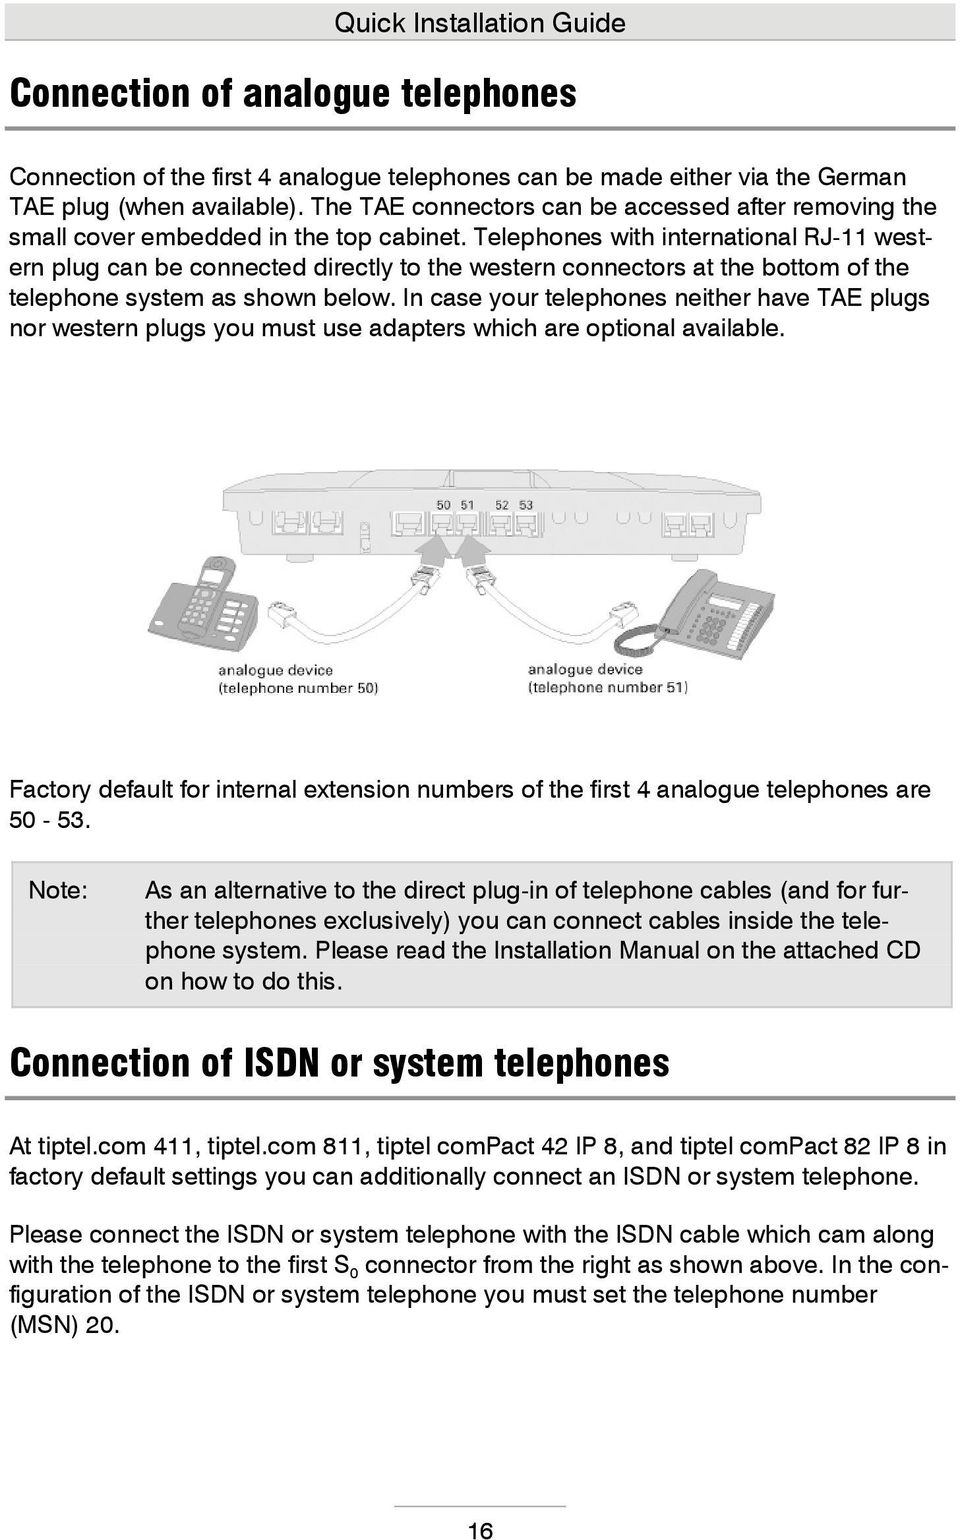 Telephones with international RJ-11 western plug can be connected directly to the western connectors at the bottom of the telephone system as shown below.